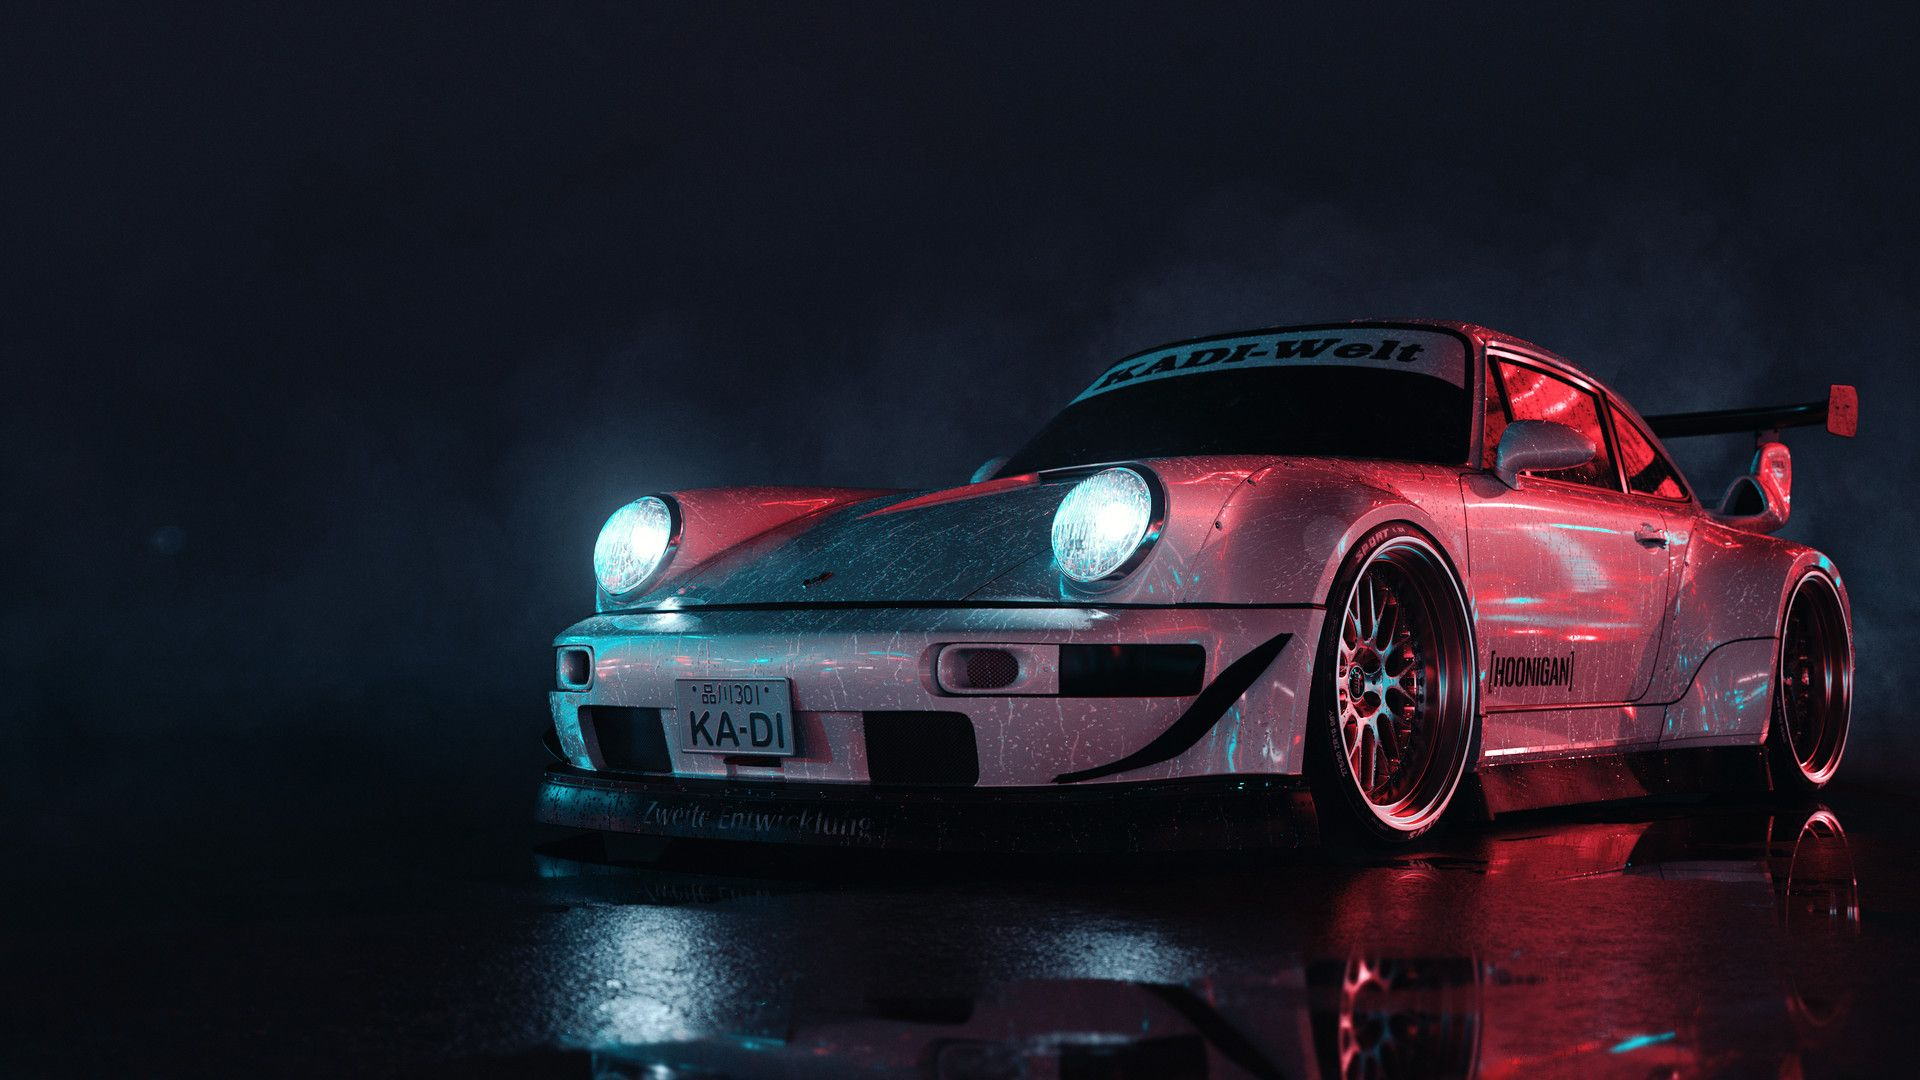 RWB Porsche Wallpapers   Top RWB Porsche Backgrounds 1920x1080